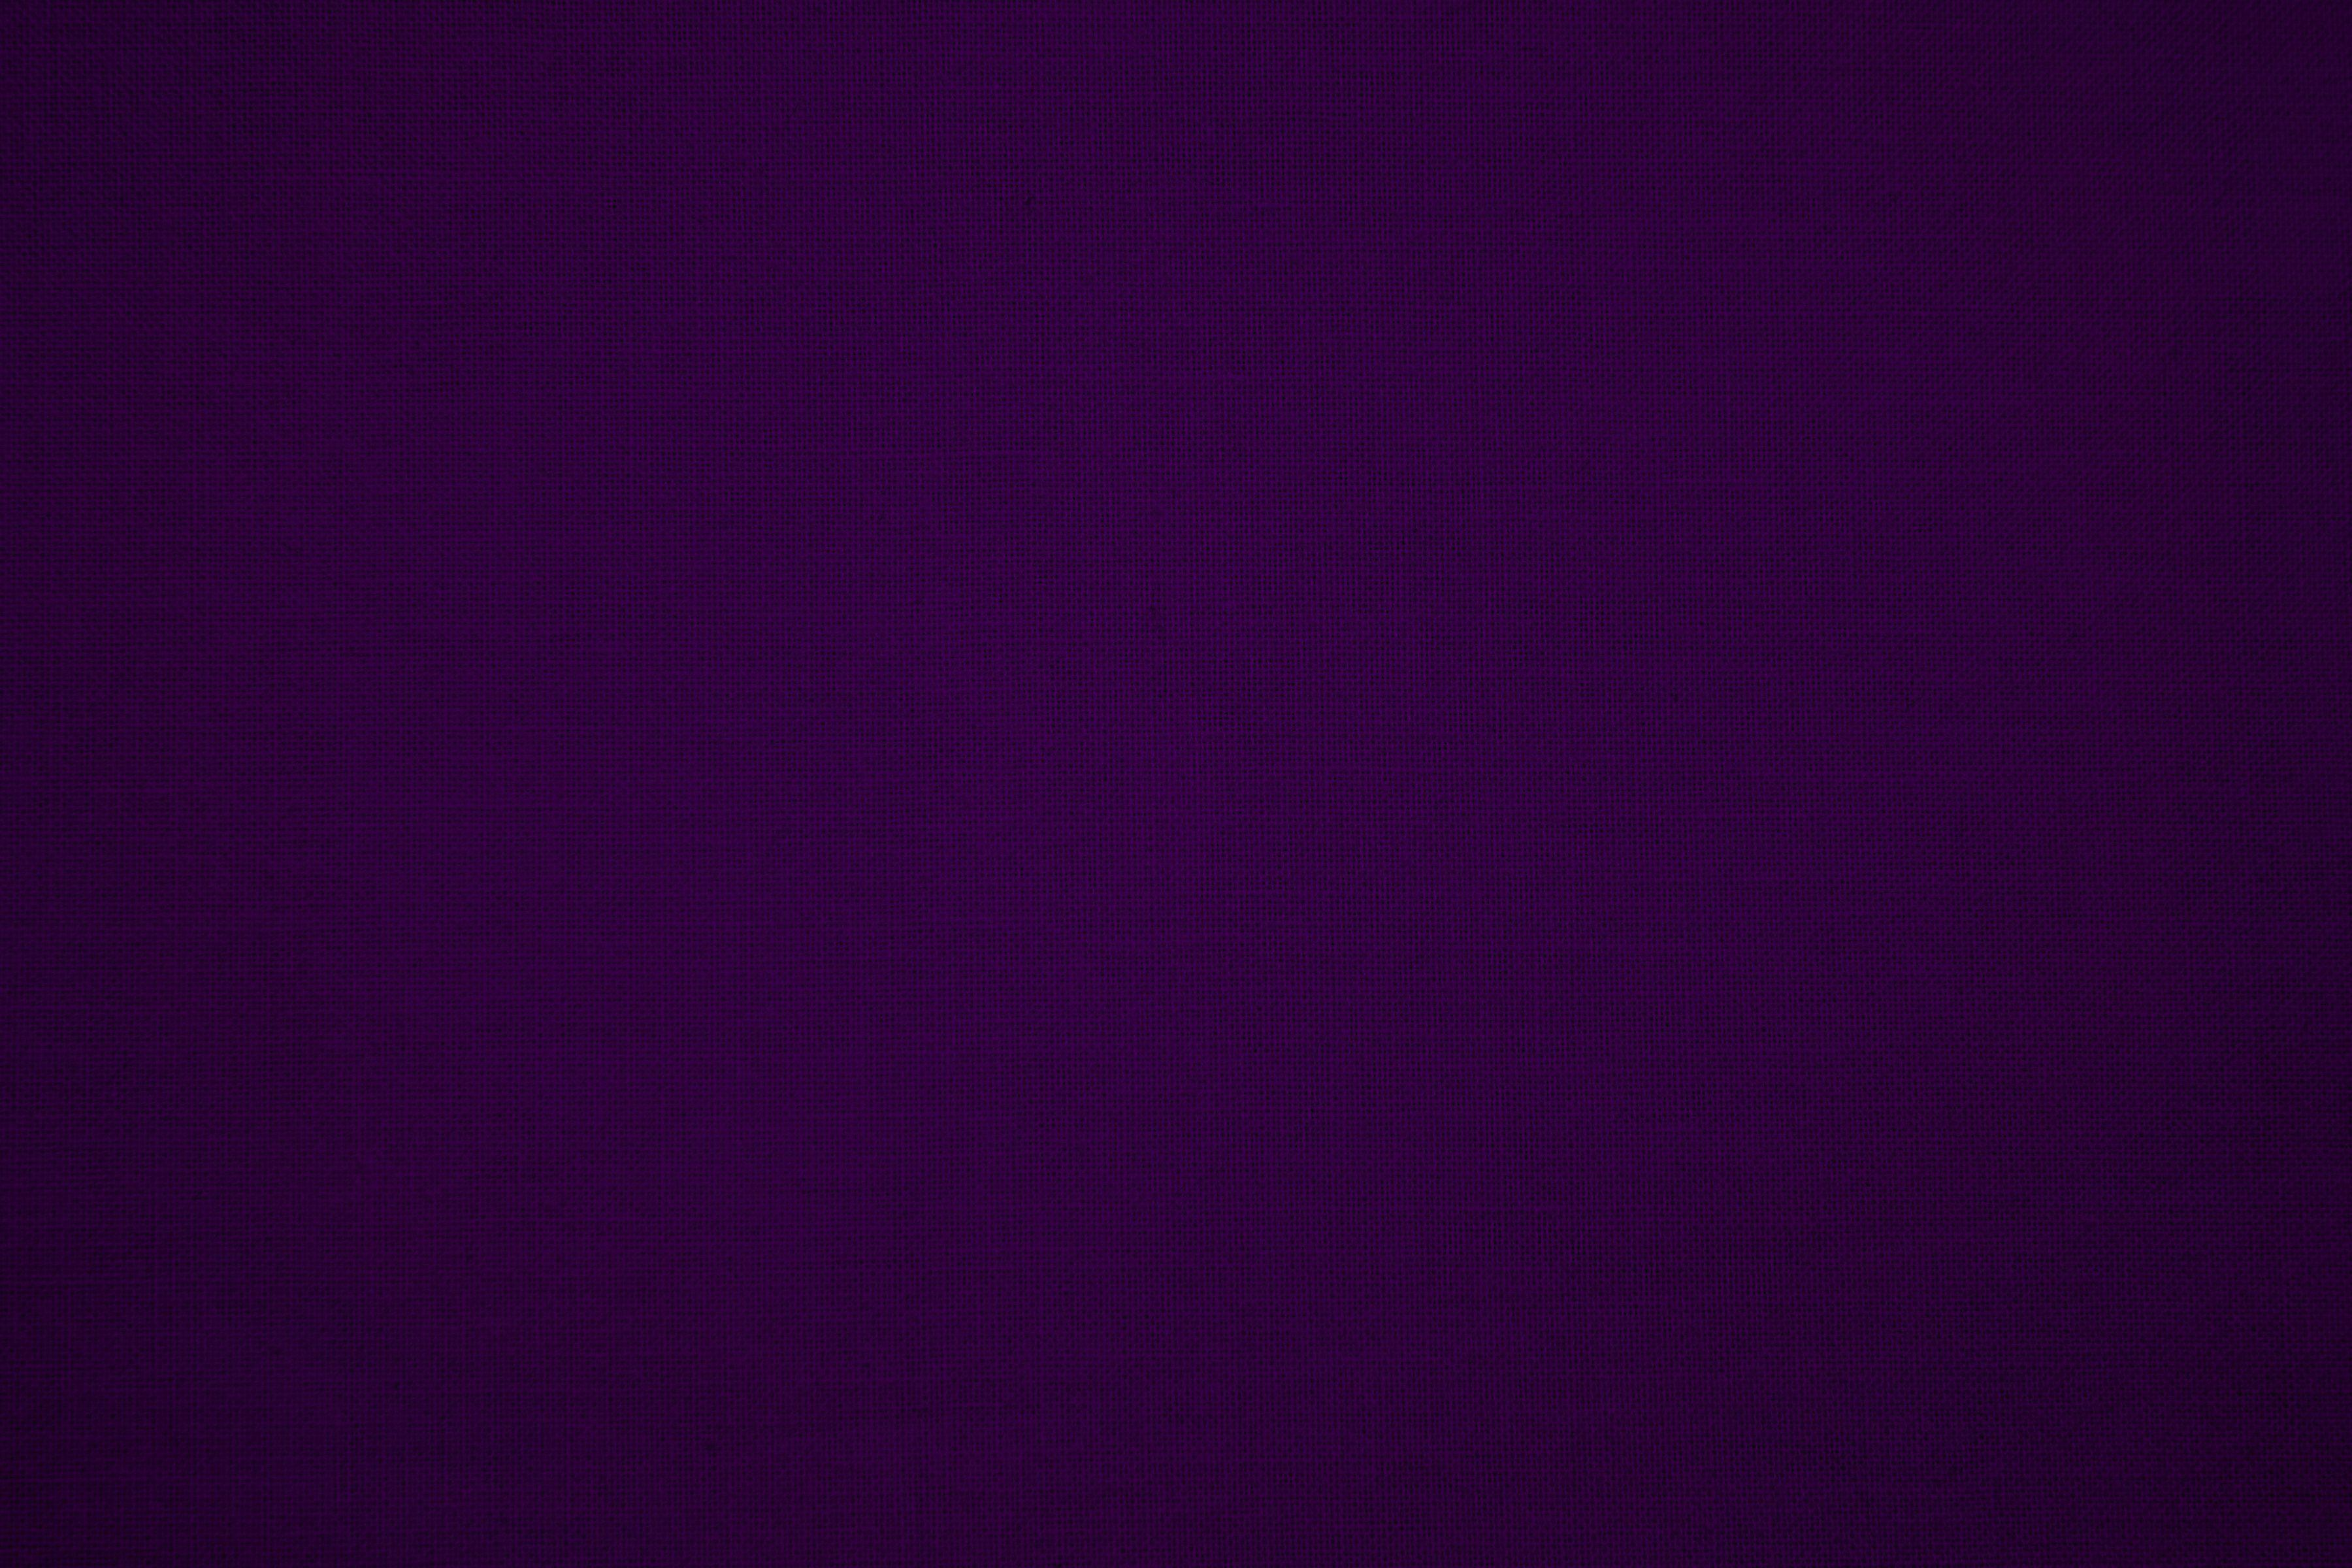 Wallpapers For > Plain Dark Purple Backgrounds